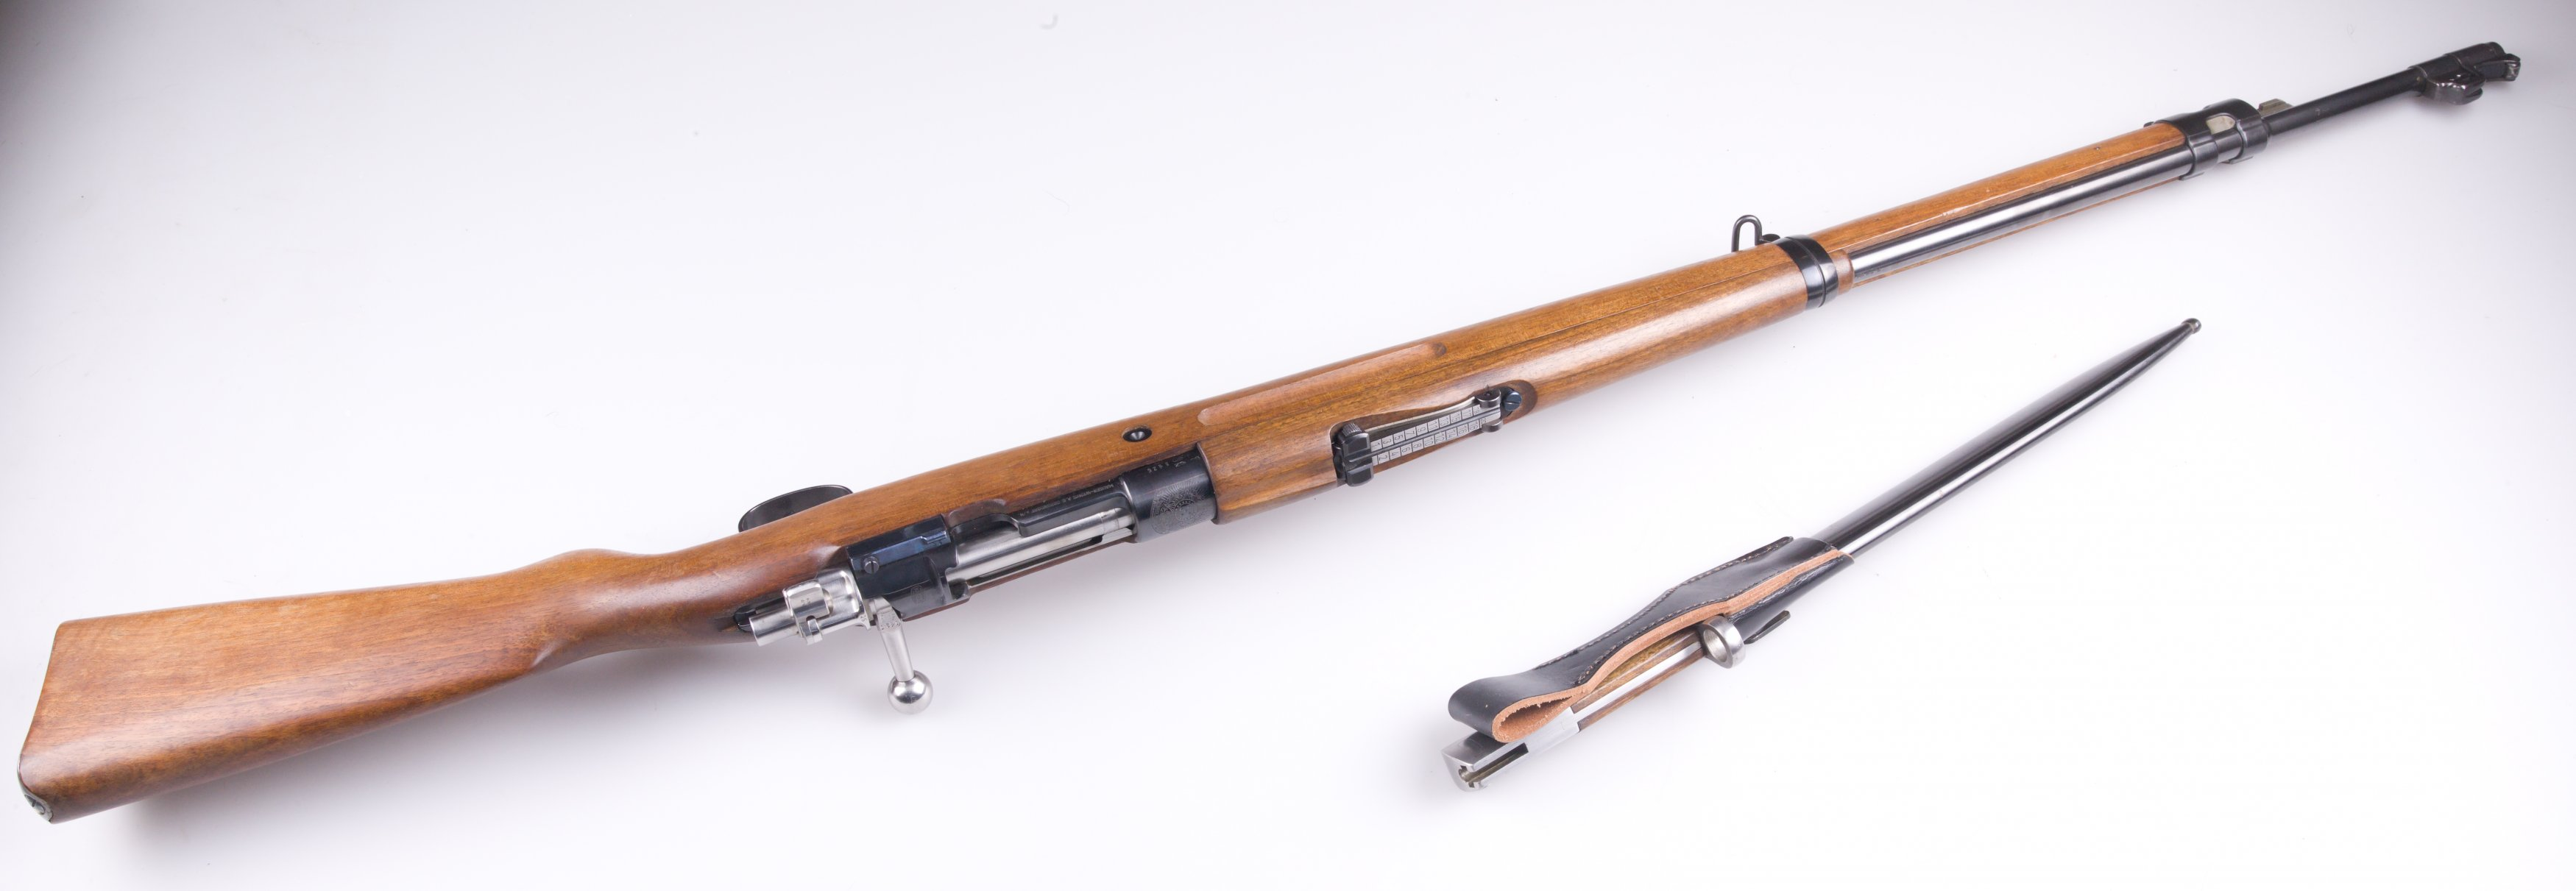 Click image for larger version.  Name:7mmMauser08.jpg Views:15 Size:221.2 KB ID:874583